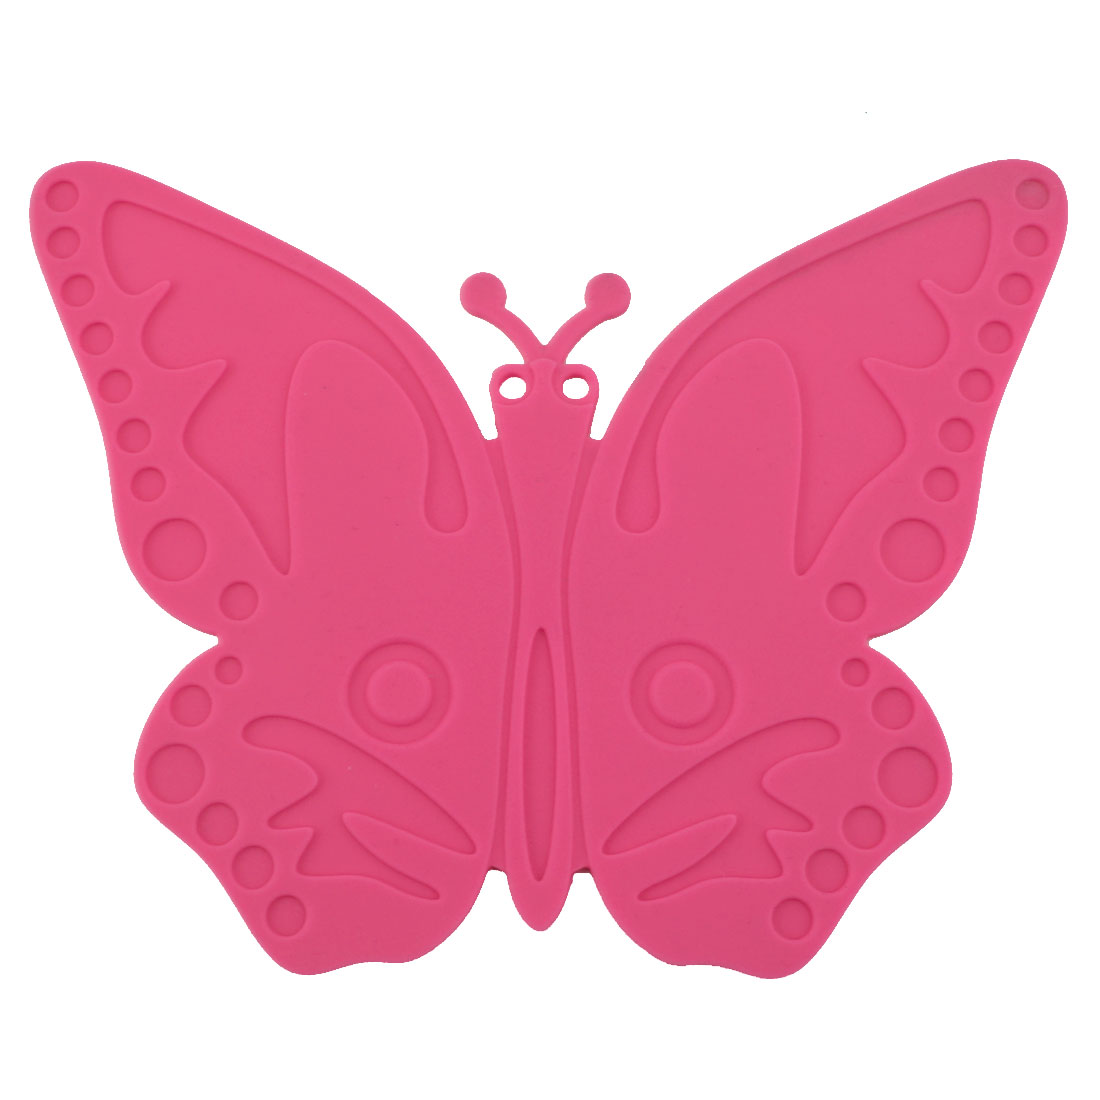 Silicone Butterfly Design Heat Resistant Mat Cup Coaster Cushion Placemat Fuchsia